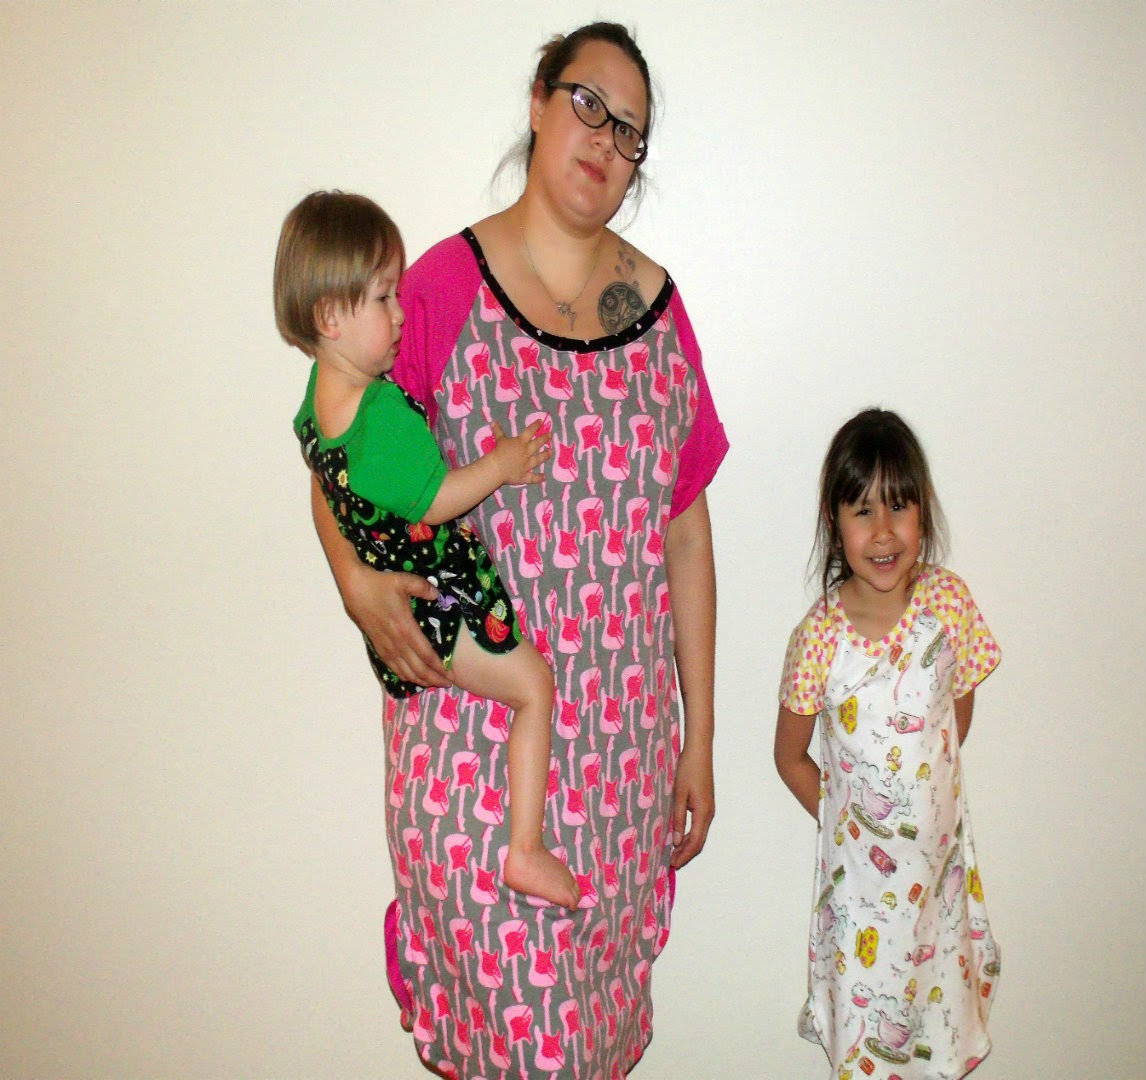 Riley's and Callie's Nightgown and Shirt from EYMM by Keep Calm and Carrion